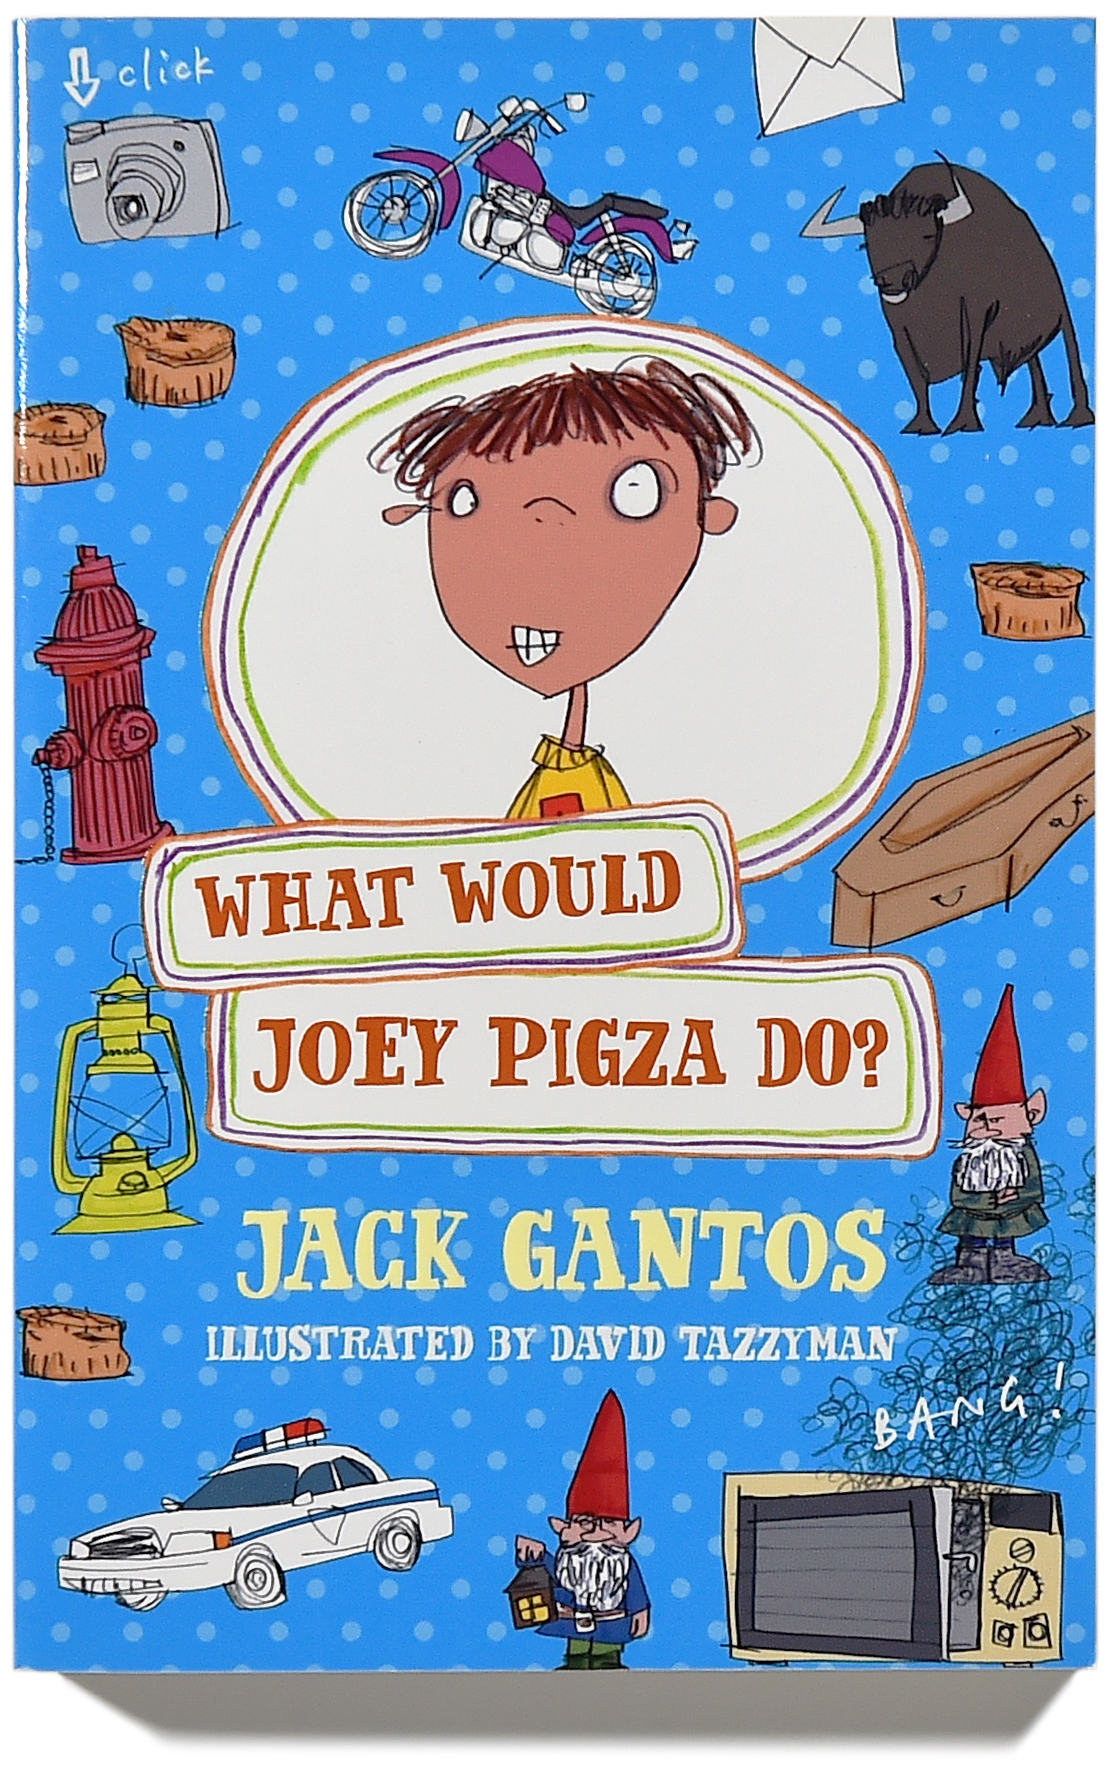 What Would Joey Pigza Do cover.FIN.jpg